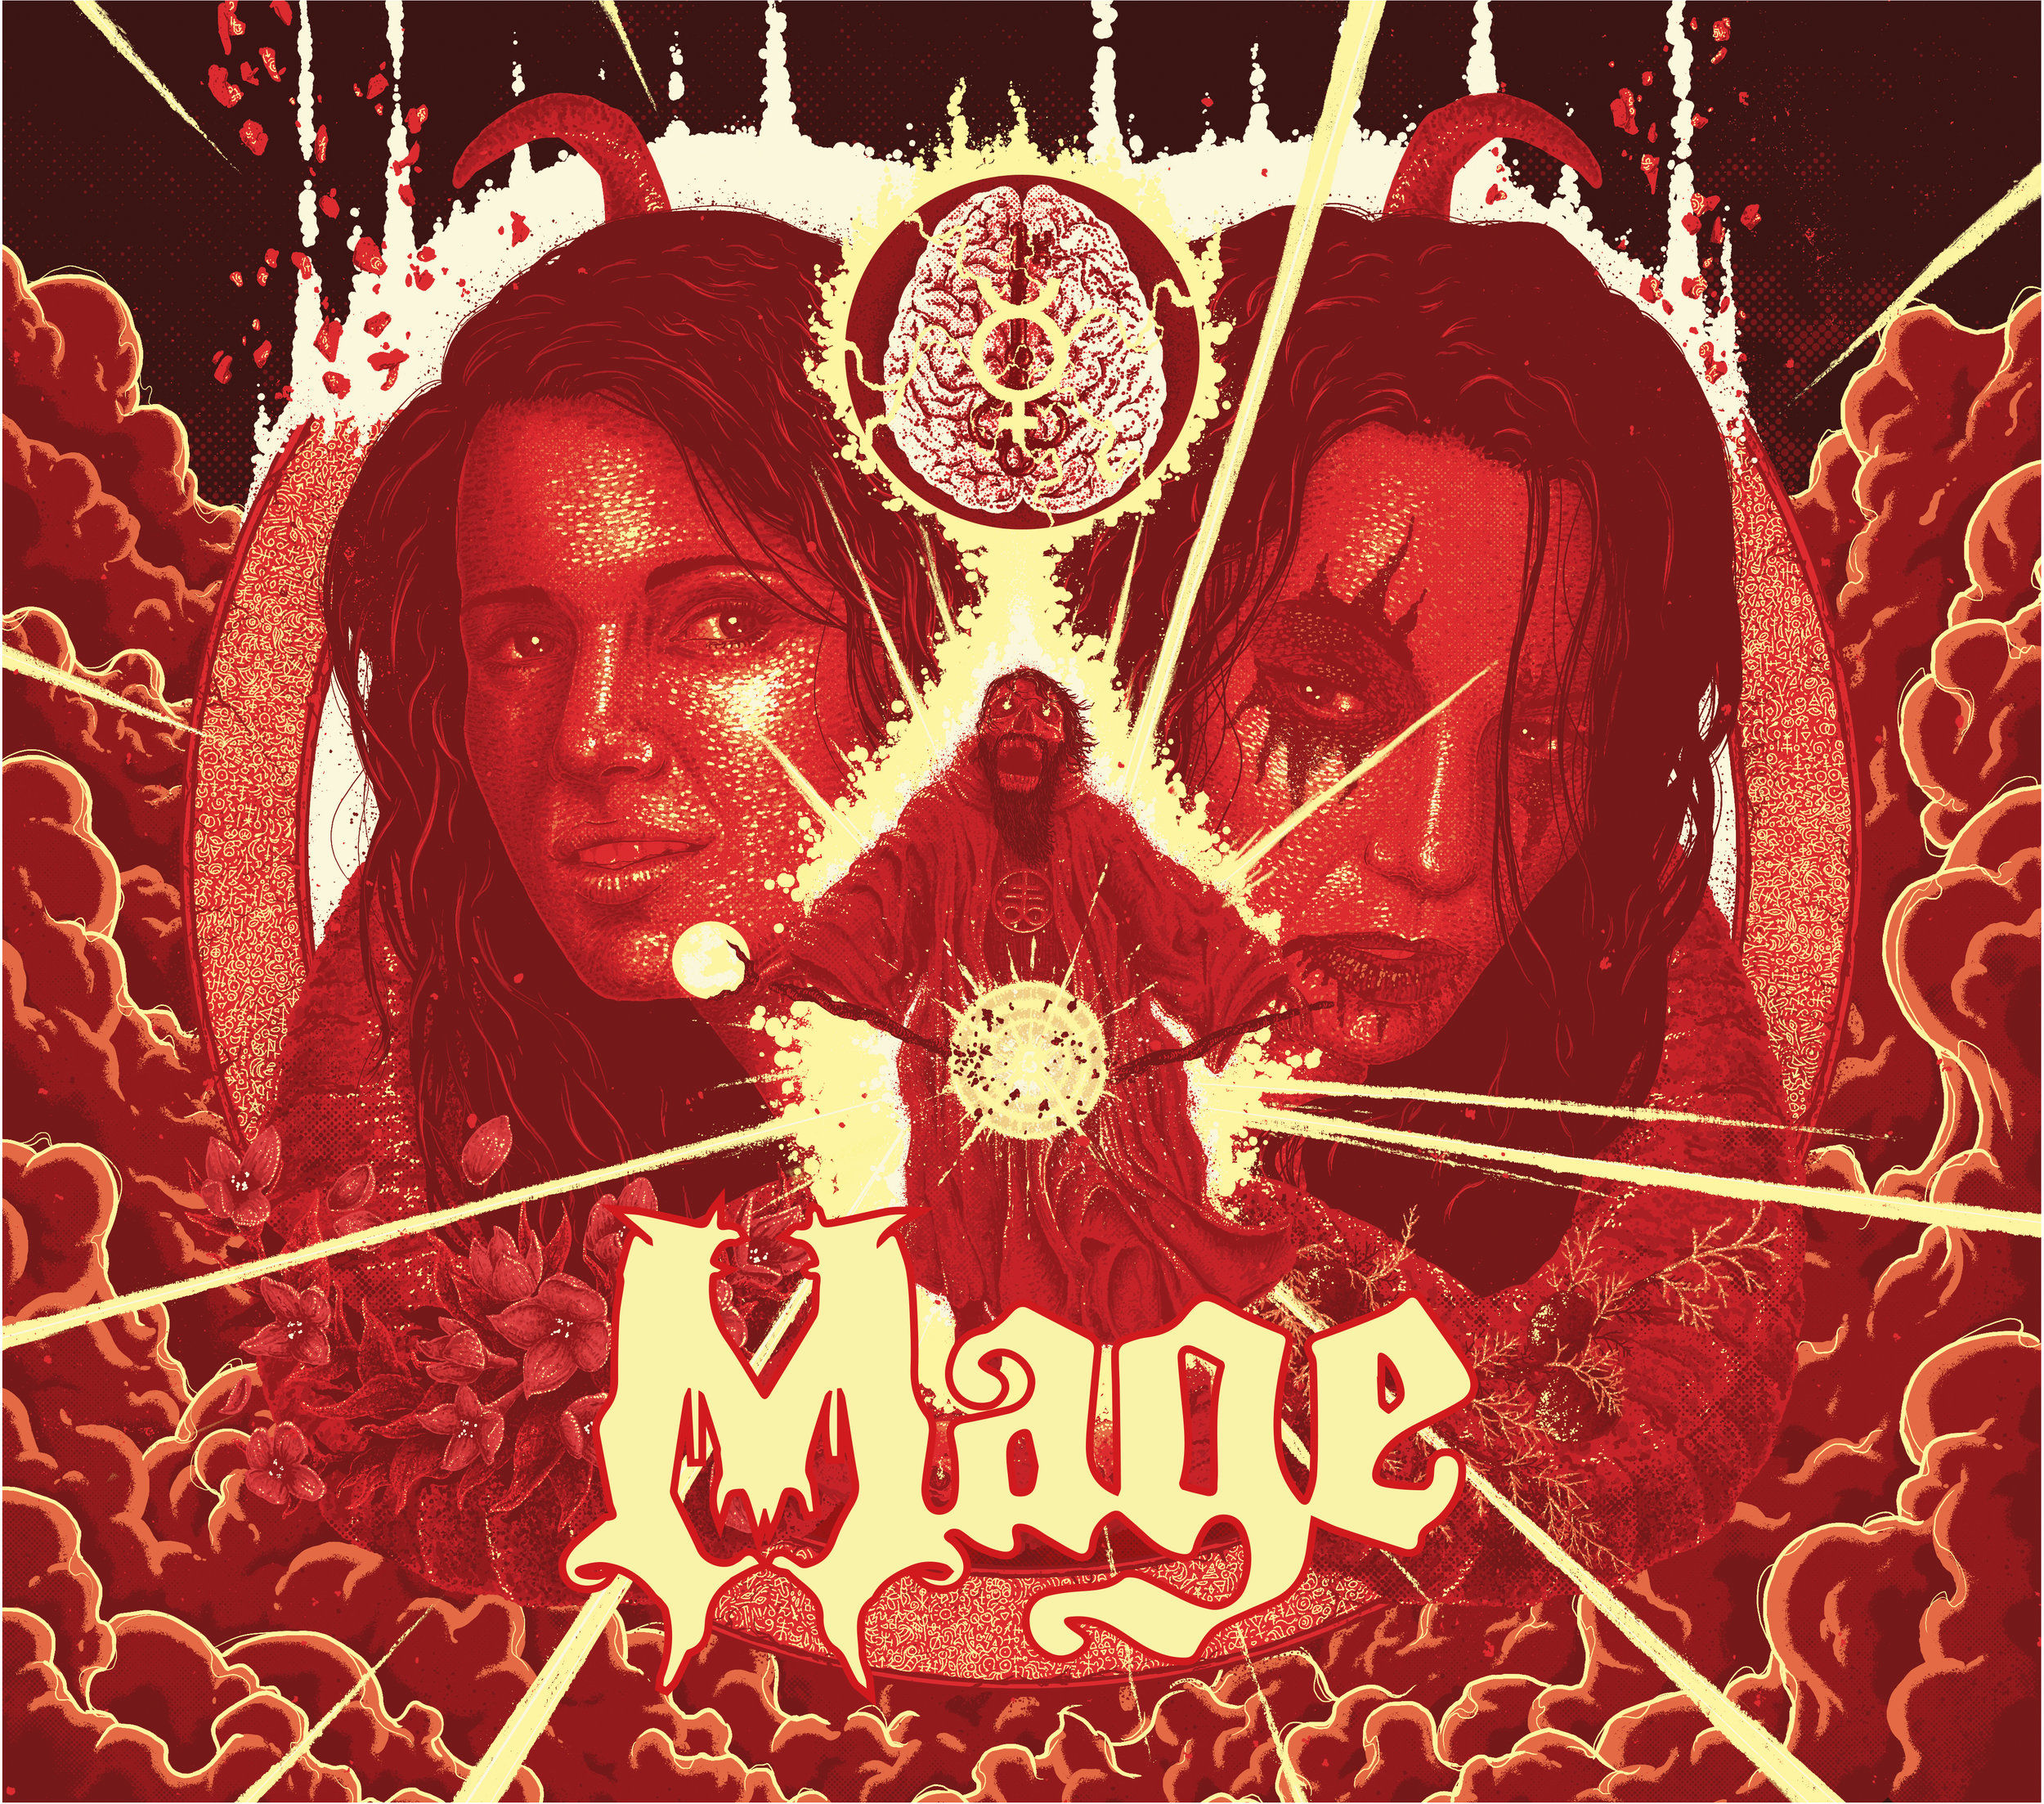 Mage Key To The Universe album cover.jpg